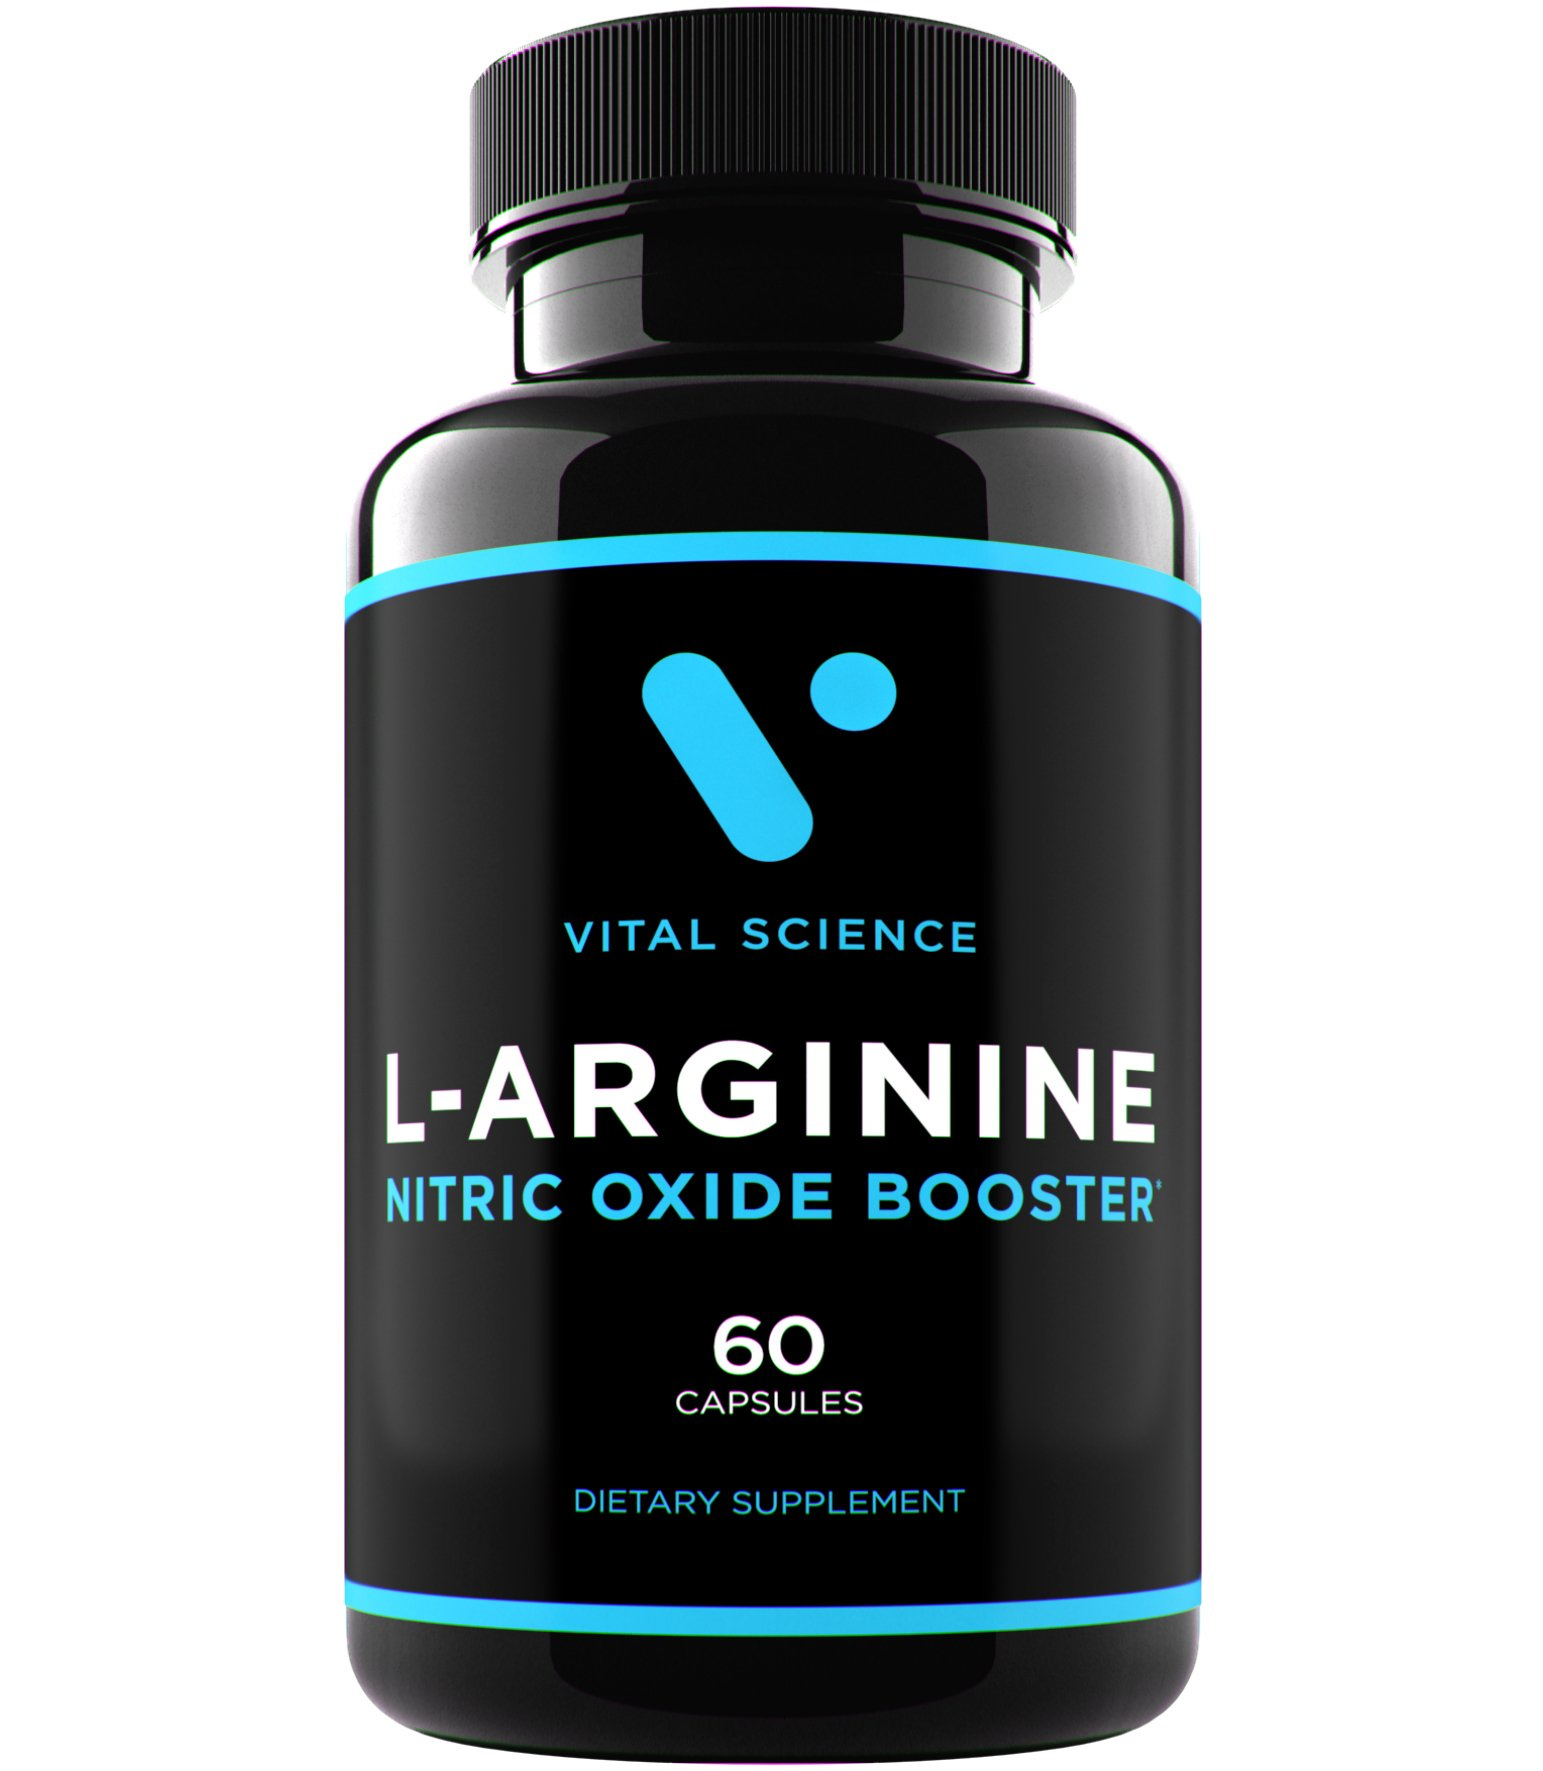 L Arginine L Citrulline Complex Supplement - 1280mg Larginine Capsules - Nitric Oxide Supplements for Men - Pro NO2 Boosters for Bodybuilding, Muscle Growth, Vascularity and Max Workouts